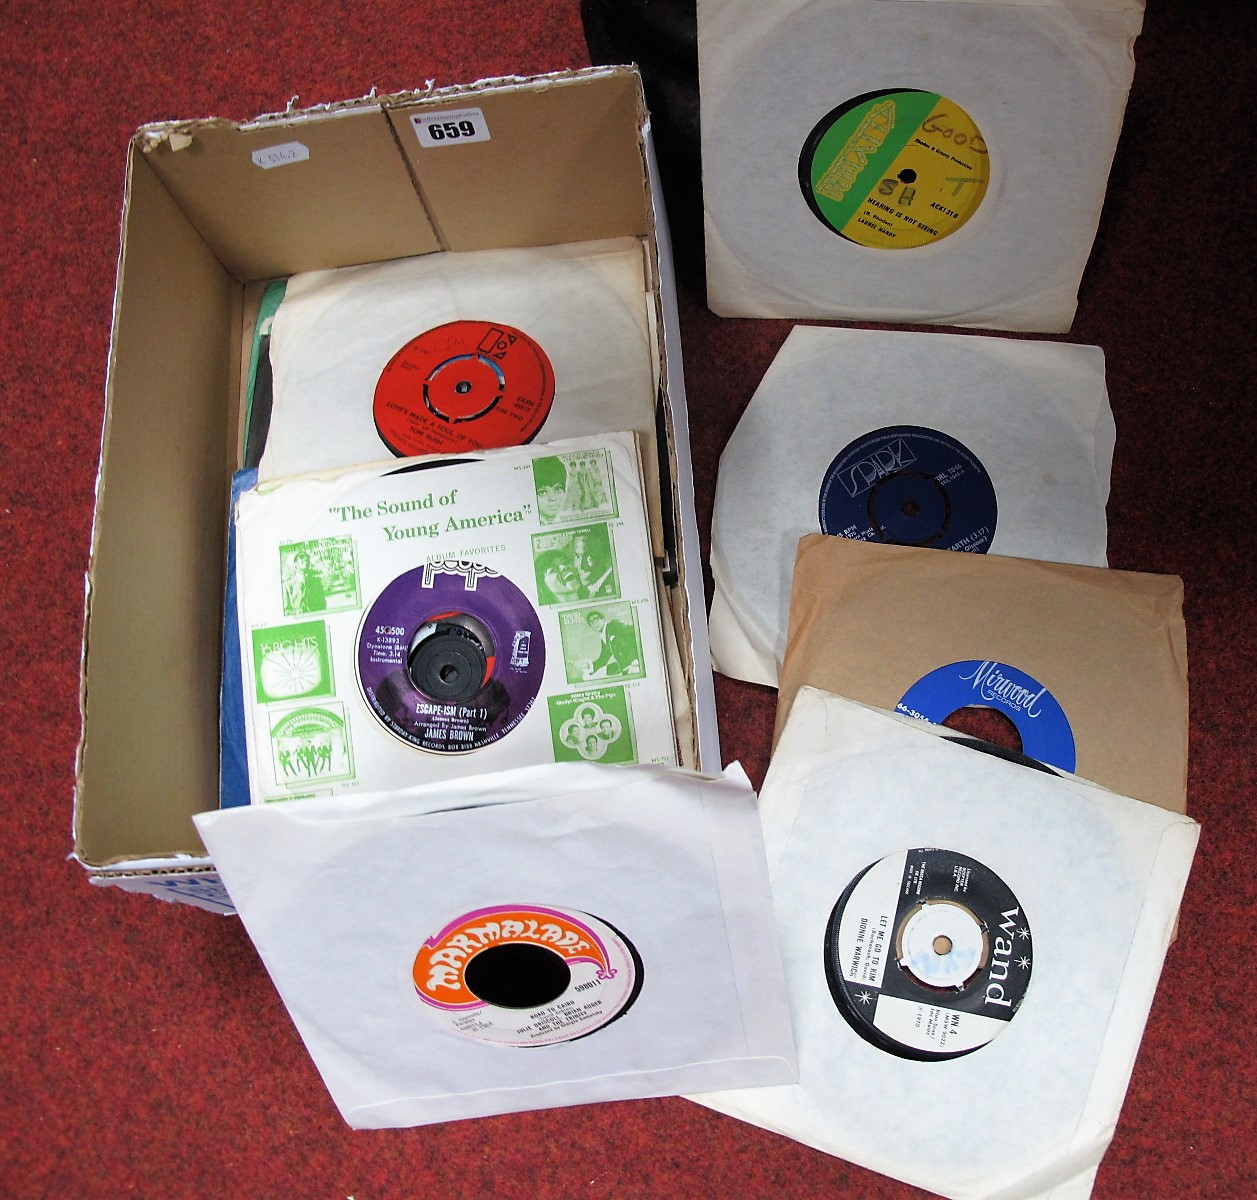 Lot 659 - A Small Collection of 45rpm's, to include labels Wand, Mirwood, Atlantic, Tamla, Trojan,